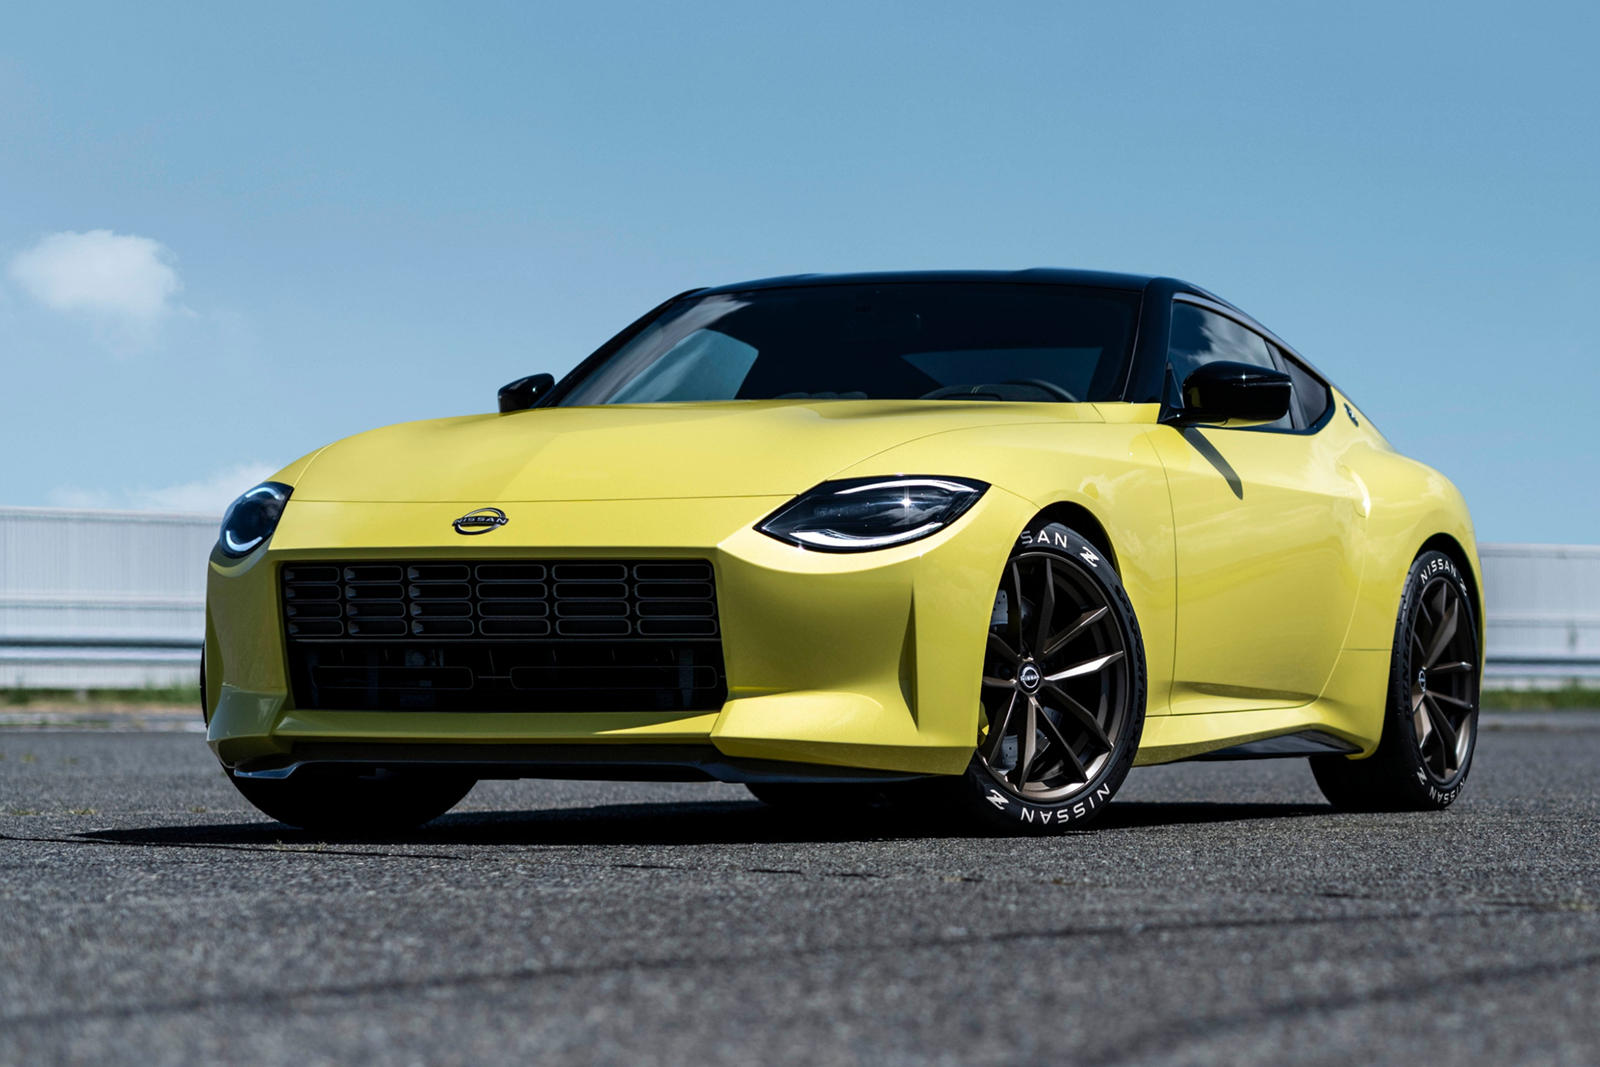 2021 Nissan 400Z: Review, Trims, Specs, Price, New Interior Features,  Exterior Design, and Specifications | CarBuzz